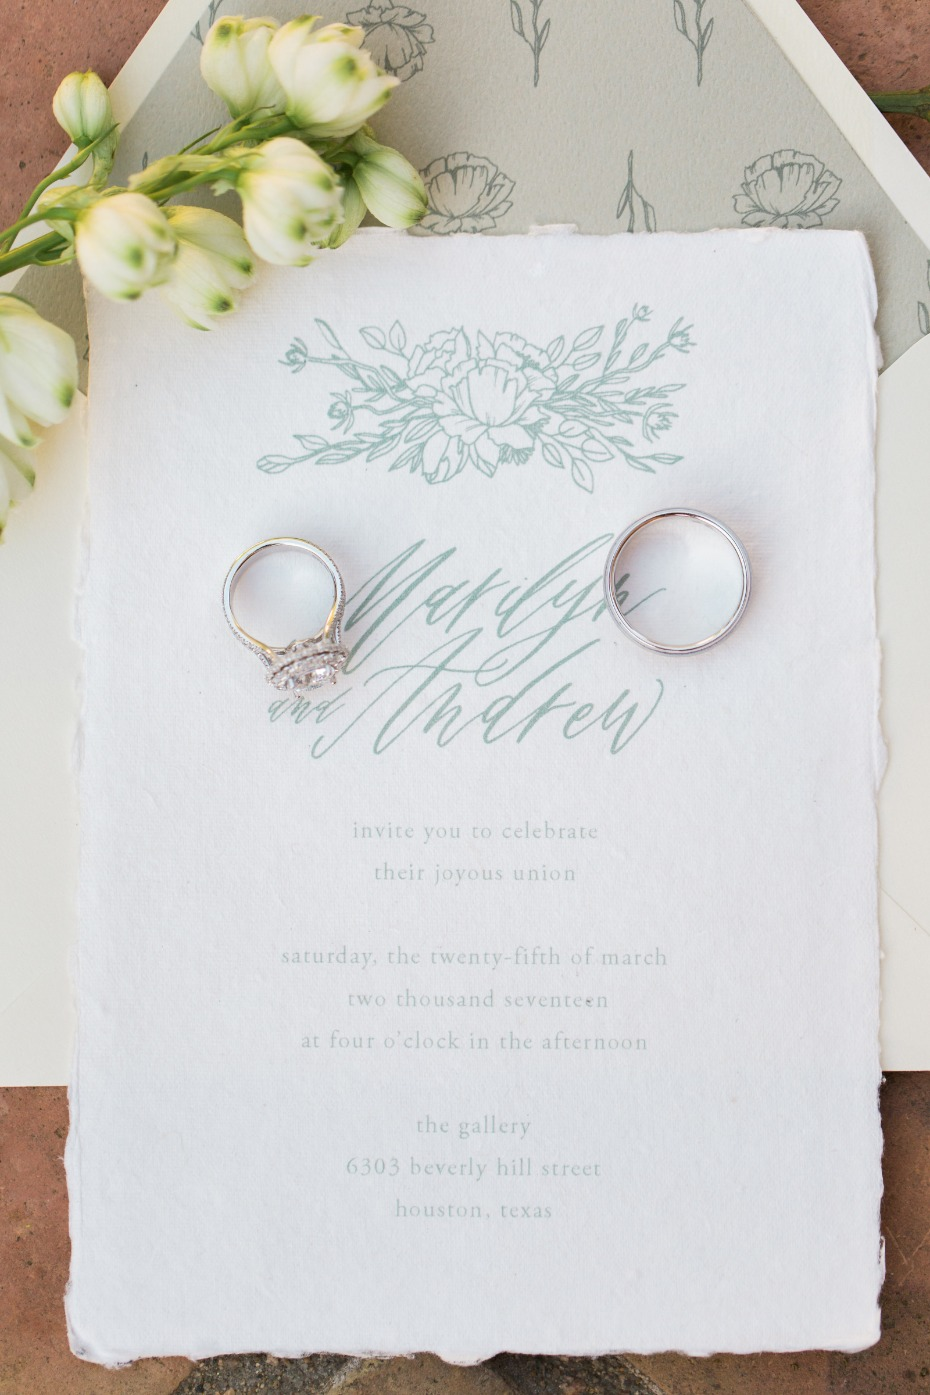 wedding invitation for your classic yet modern wedding day